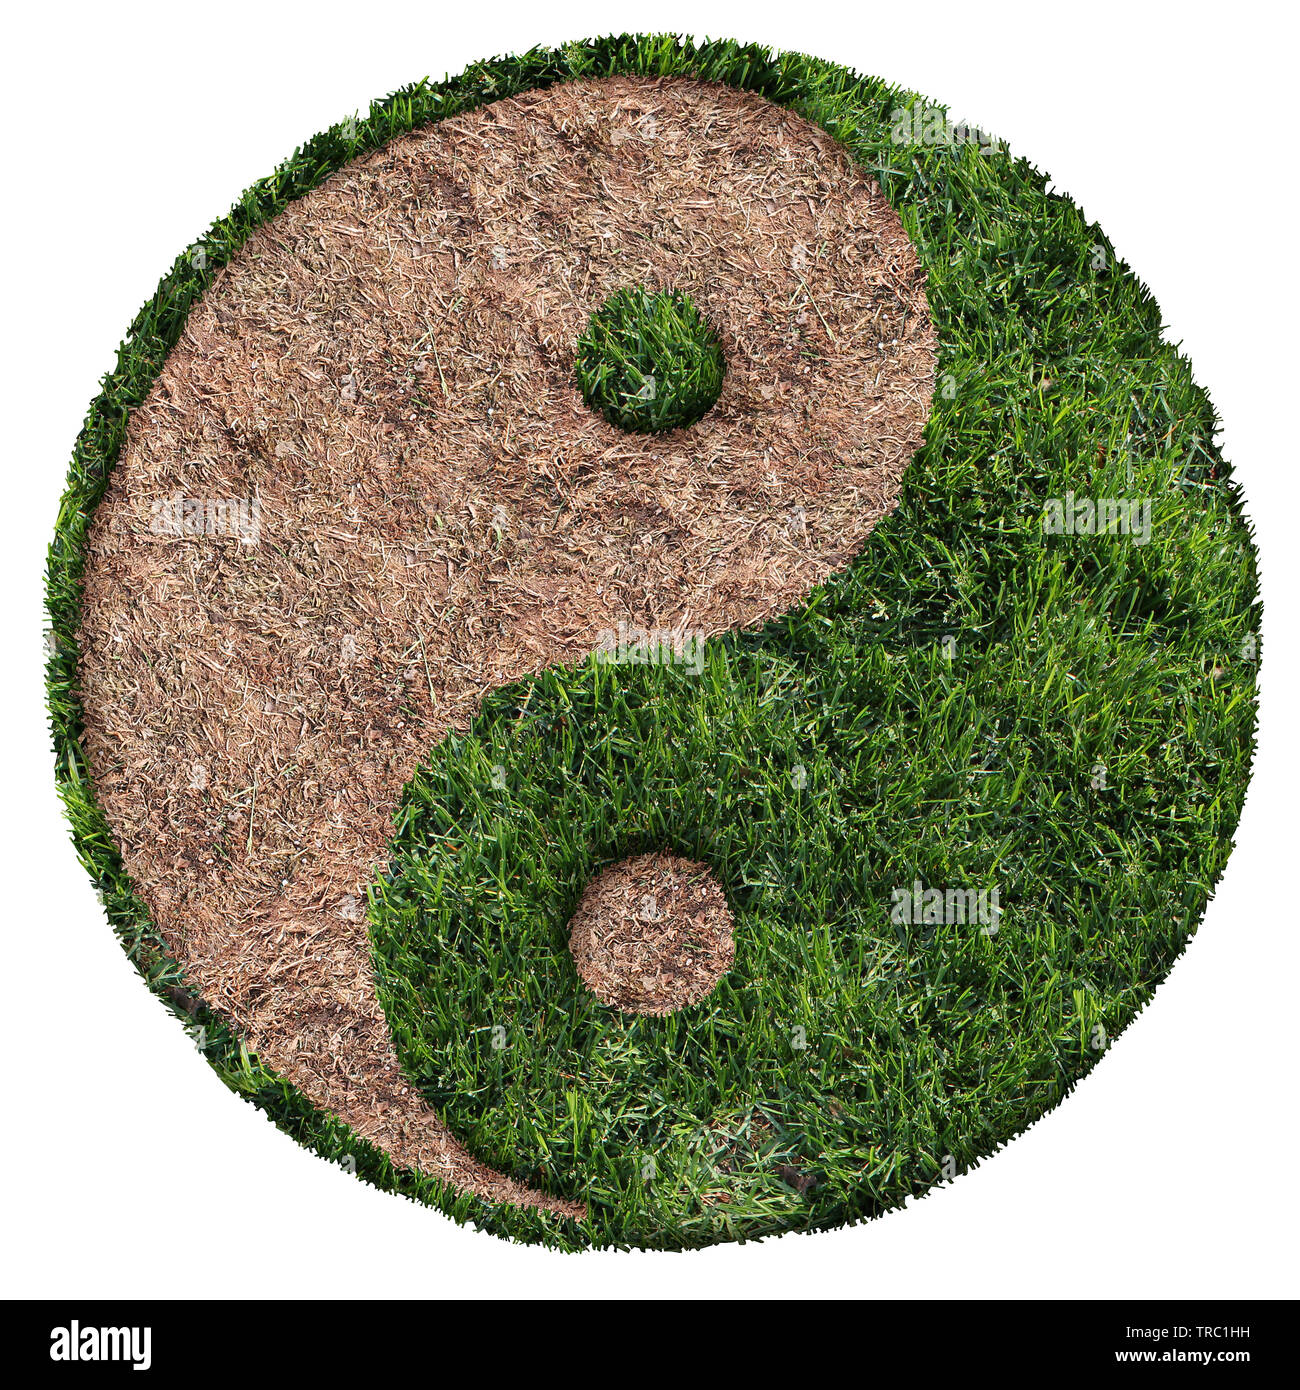 Lawn Care Symbol With Green And Brown Patch And Drought Area Shaped As A  Ying And Yang Symbol As A Landscaping Icon Composite Image.